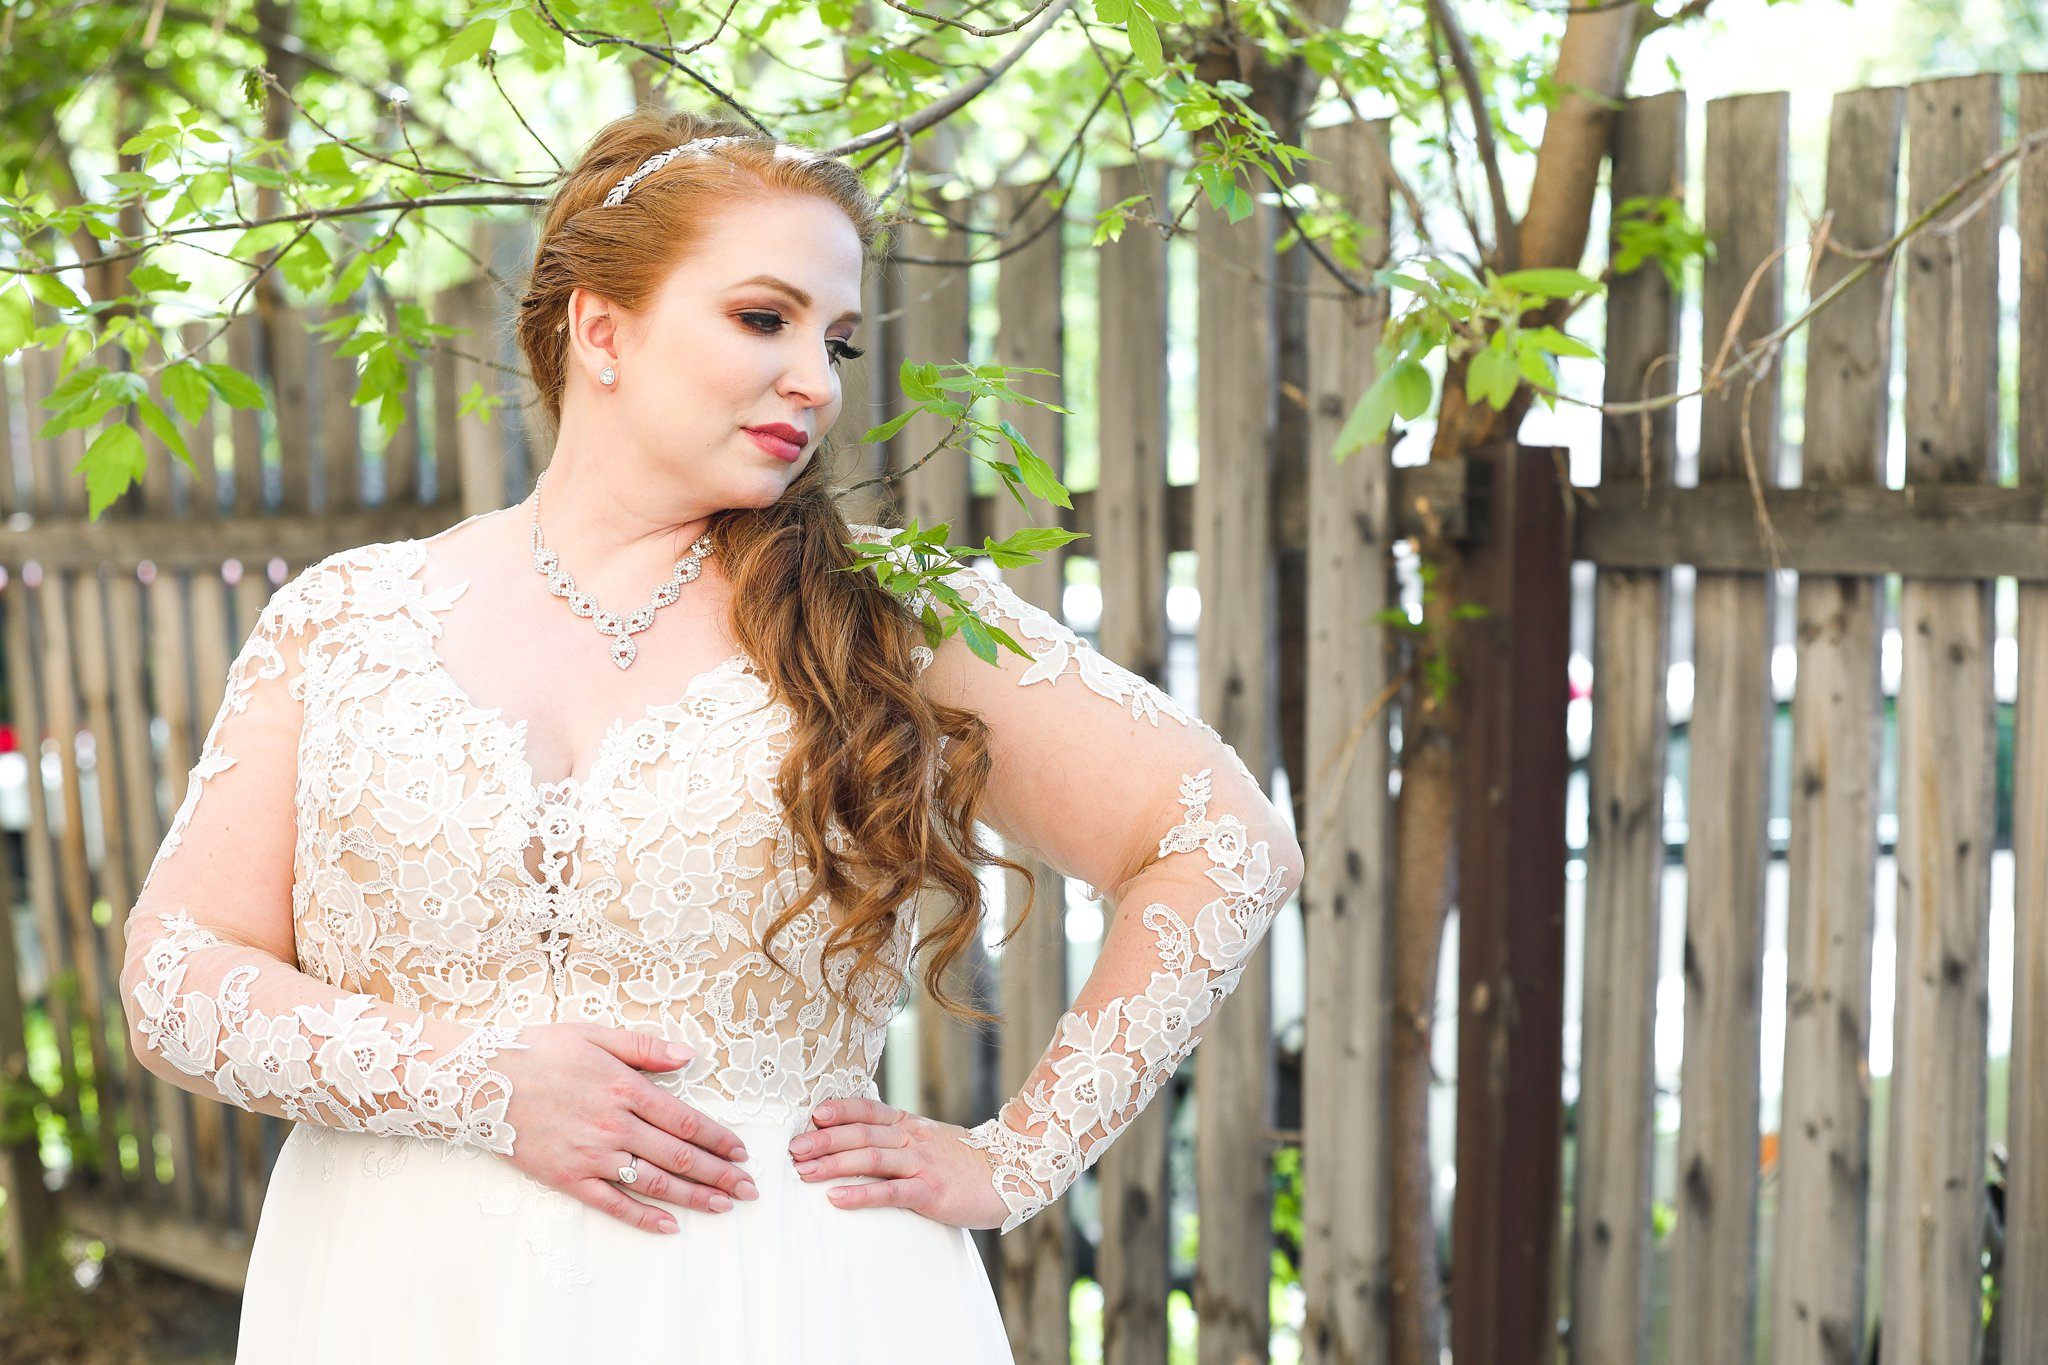 AshleyDaphnePhotography Calgary Wedding Photographer Rouge Inglewood Bride Groom Photography_0092.jpg